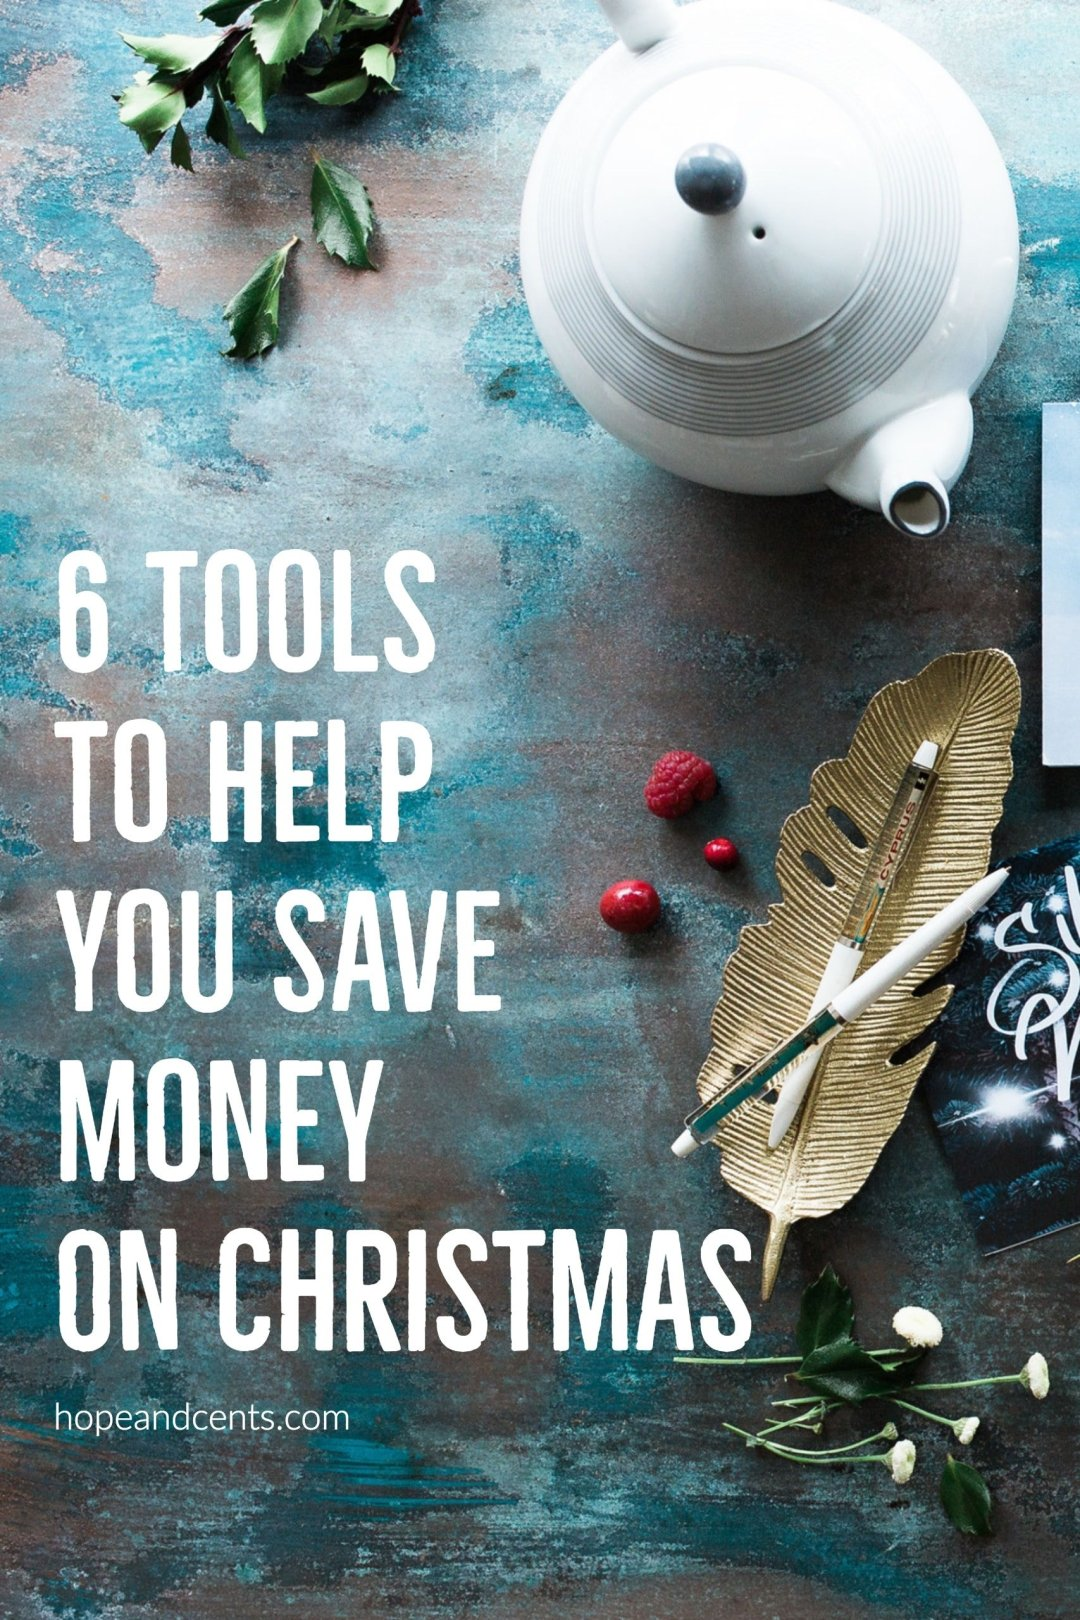 Looking for ways to save money on Christmas? Love these apps and websites designed to help you spend less on Christmas shopping and everything else you need to buy during the holidays.